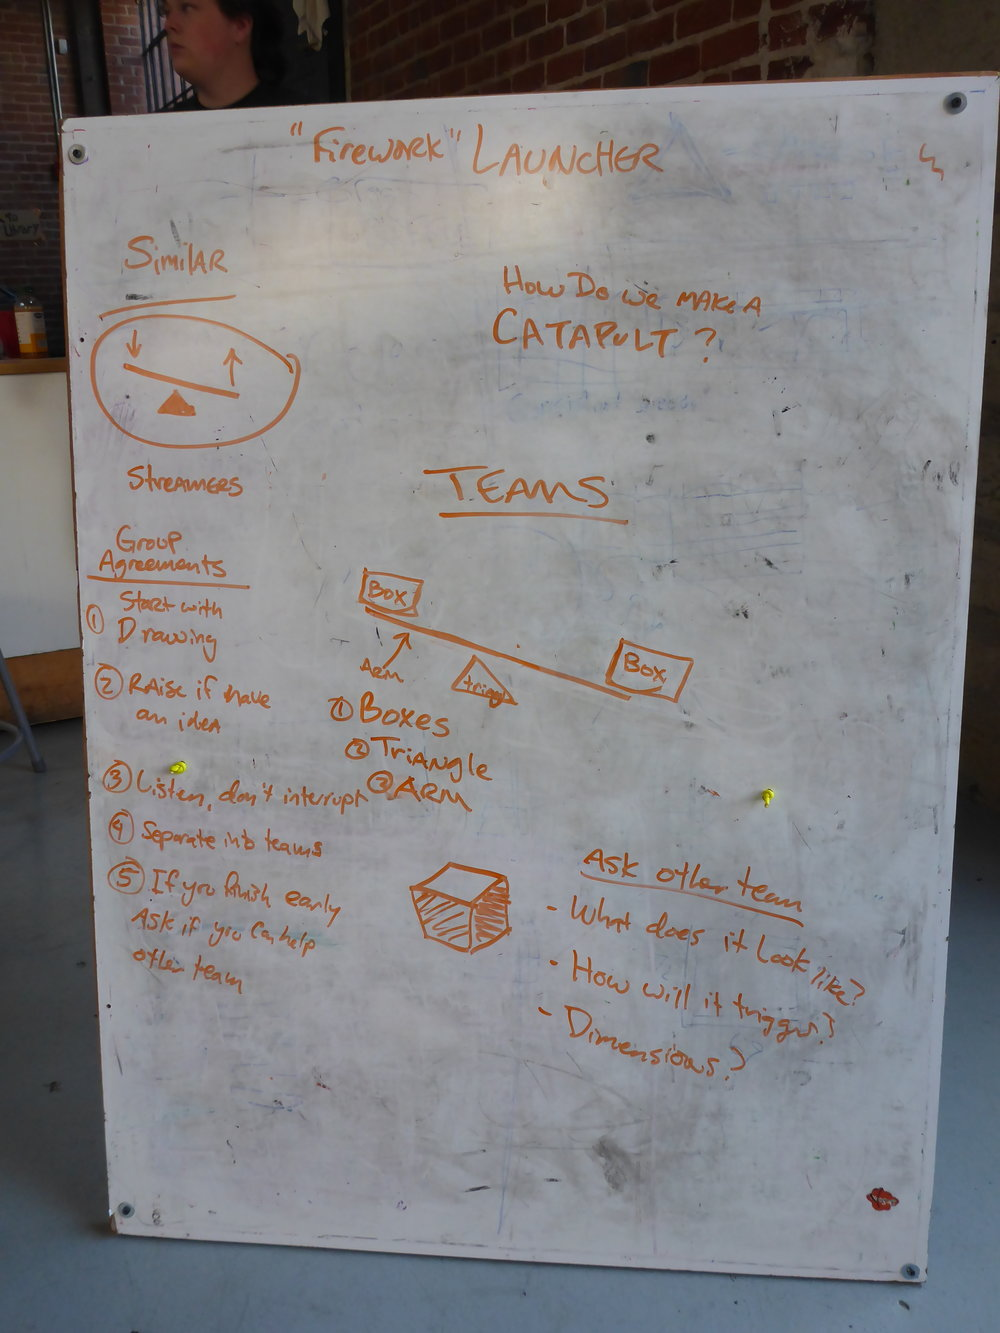 The launching machine had a particularly long design session, which also included brainstorming ways to effectively talk to one another during the session, ideas for what the machine might look like and also do, as well as a list of things we needed to ask the other team.